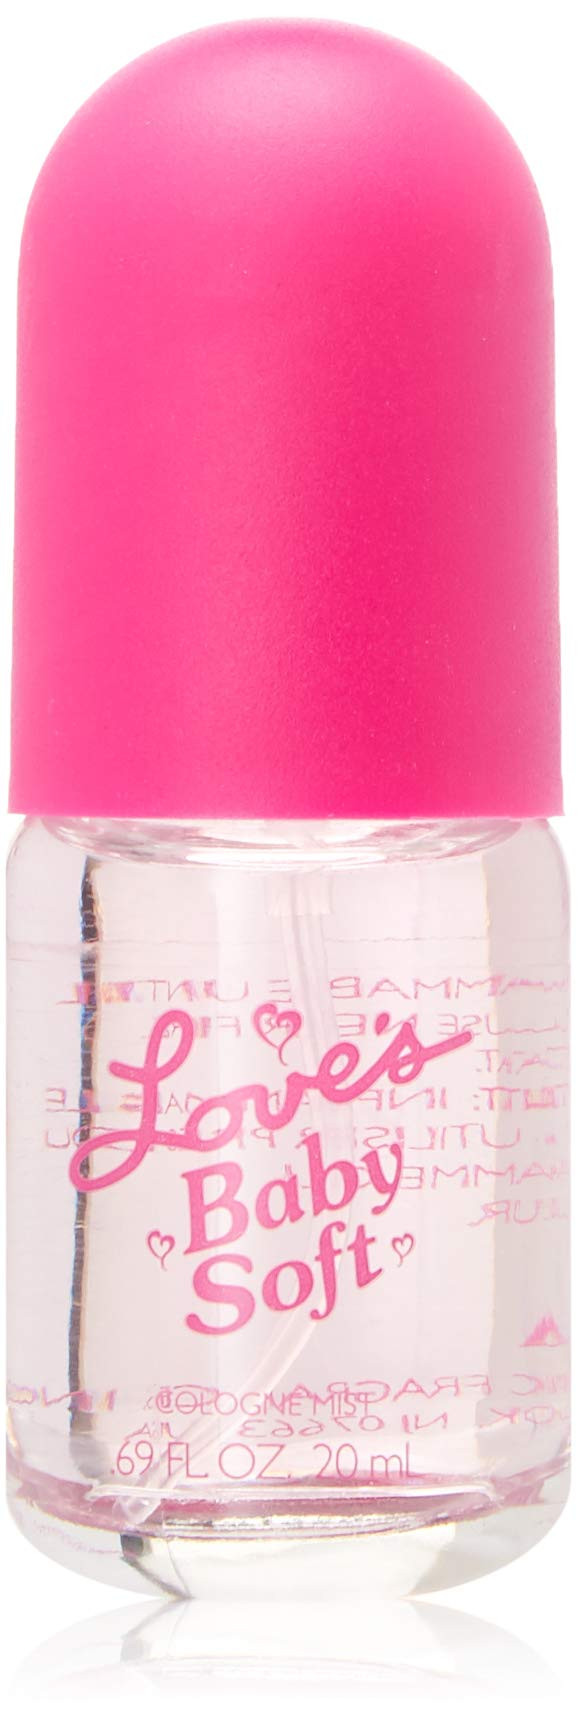 Loves Baby Soft Perfume Gift Sets  Amazon Dana Loves Baby Soft Cologne Spray 1 Ounce